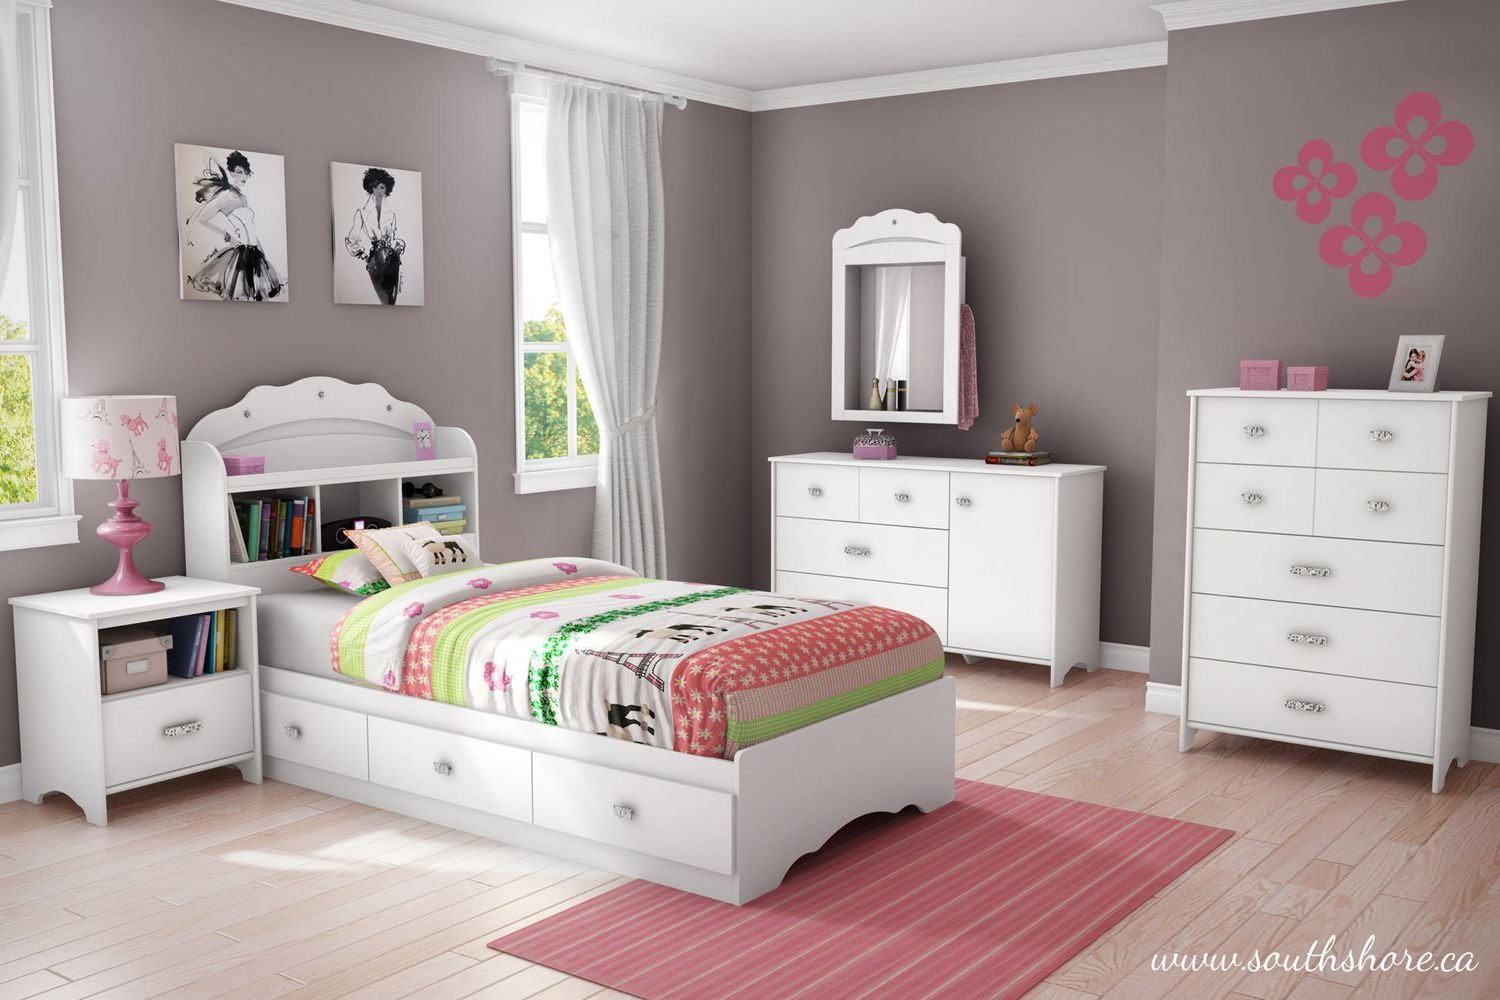 South Shore Bedroom Furniture South Shore Tiara Collection Twin Mates Pure White Bed Walmartca